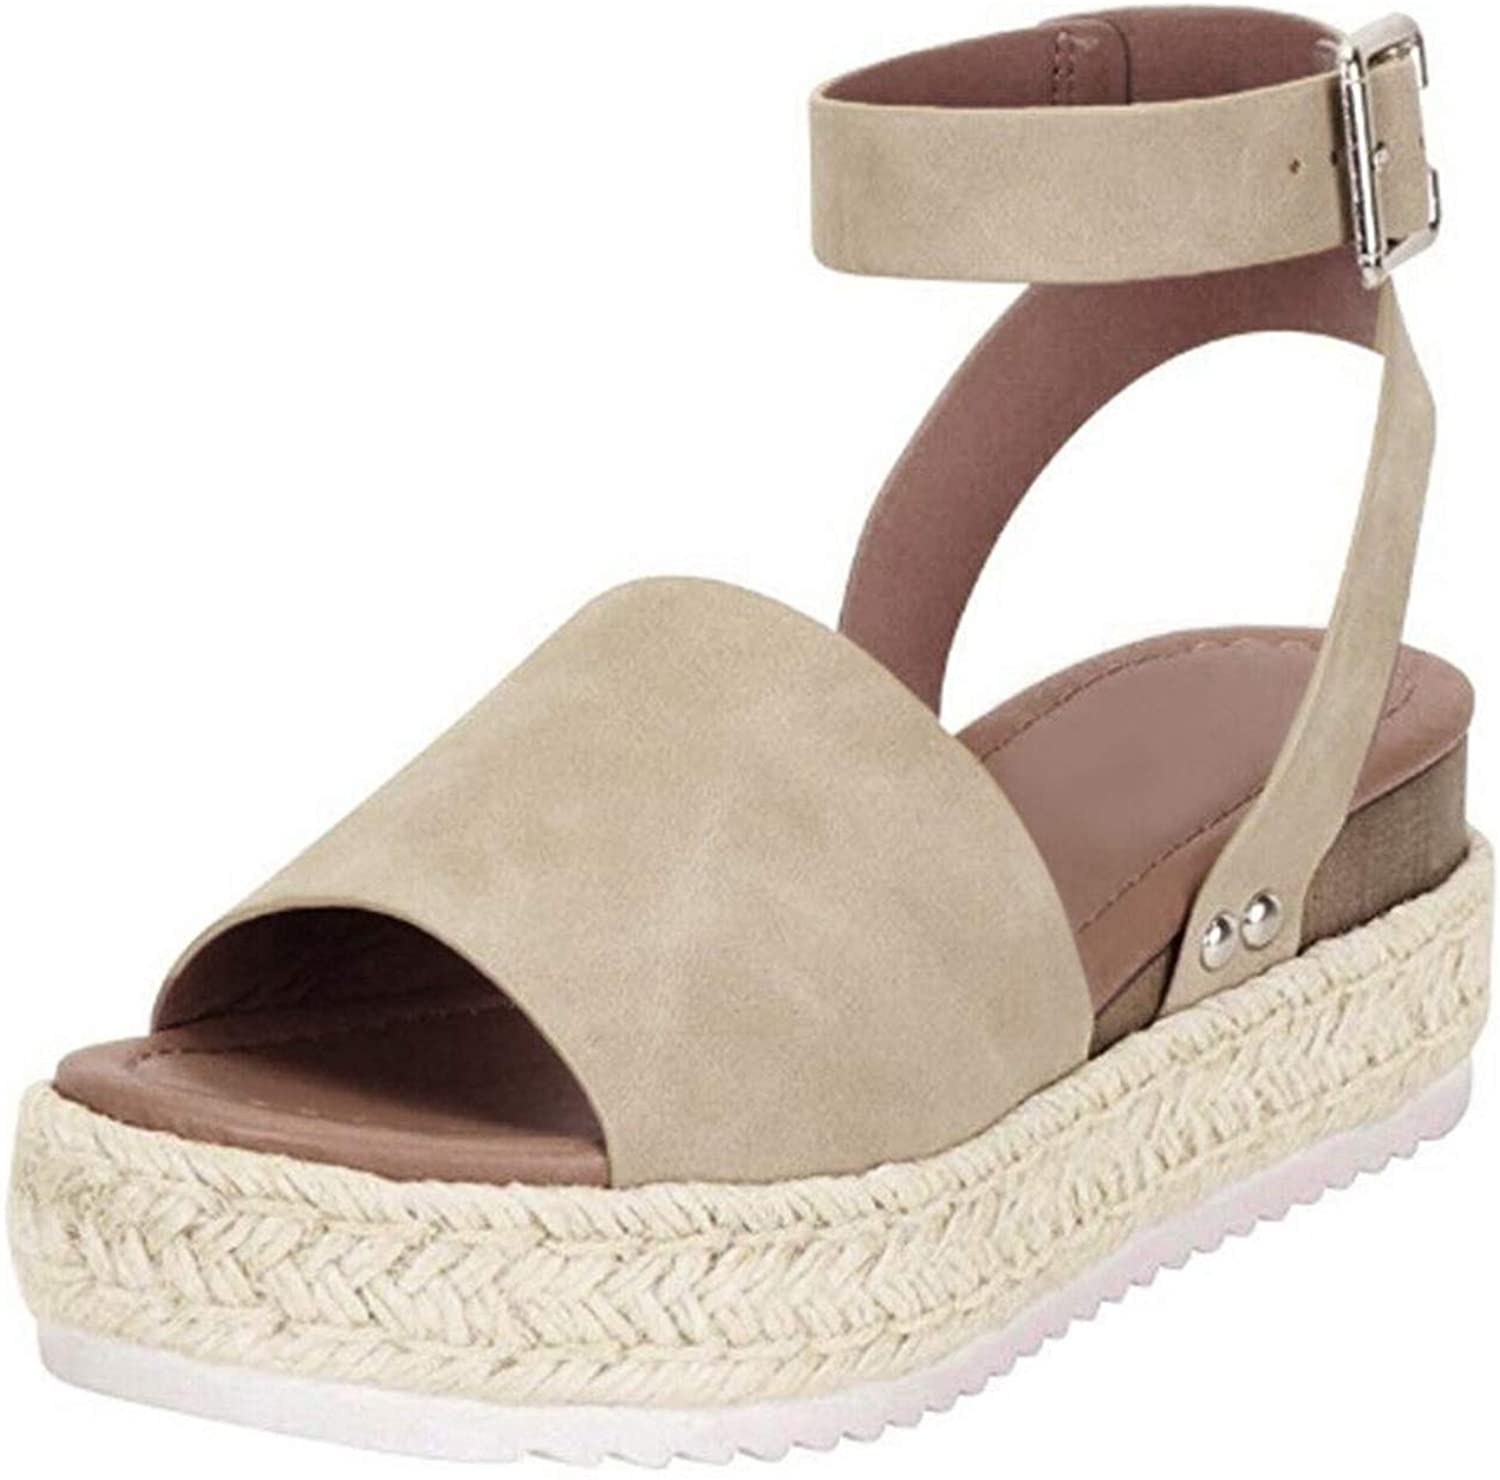 FAMOORE Women's Fashion 2021 spring and summer new Casual Peep Toe Platforms Sandals Wedges Award